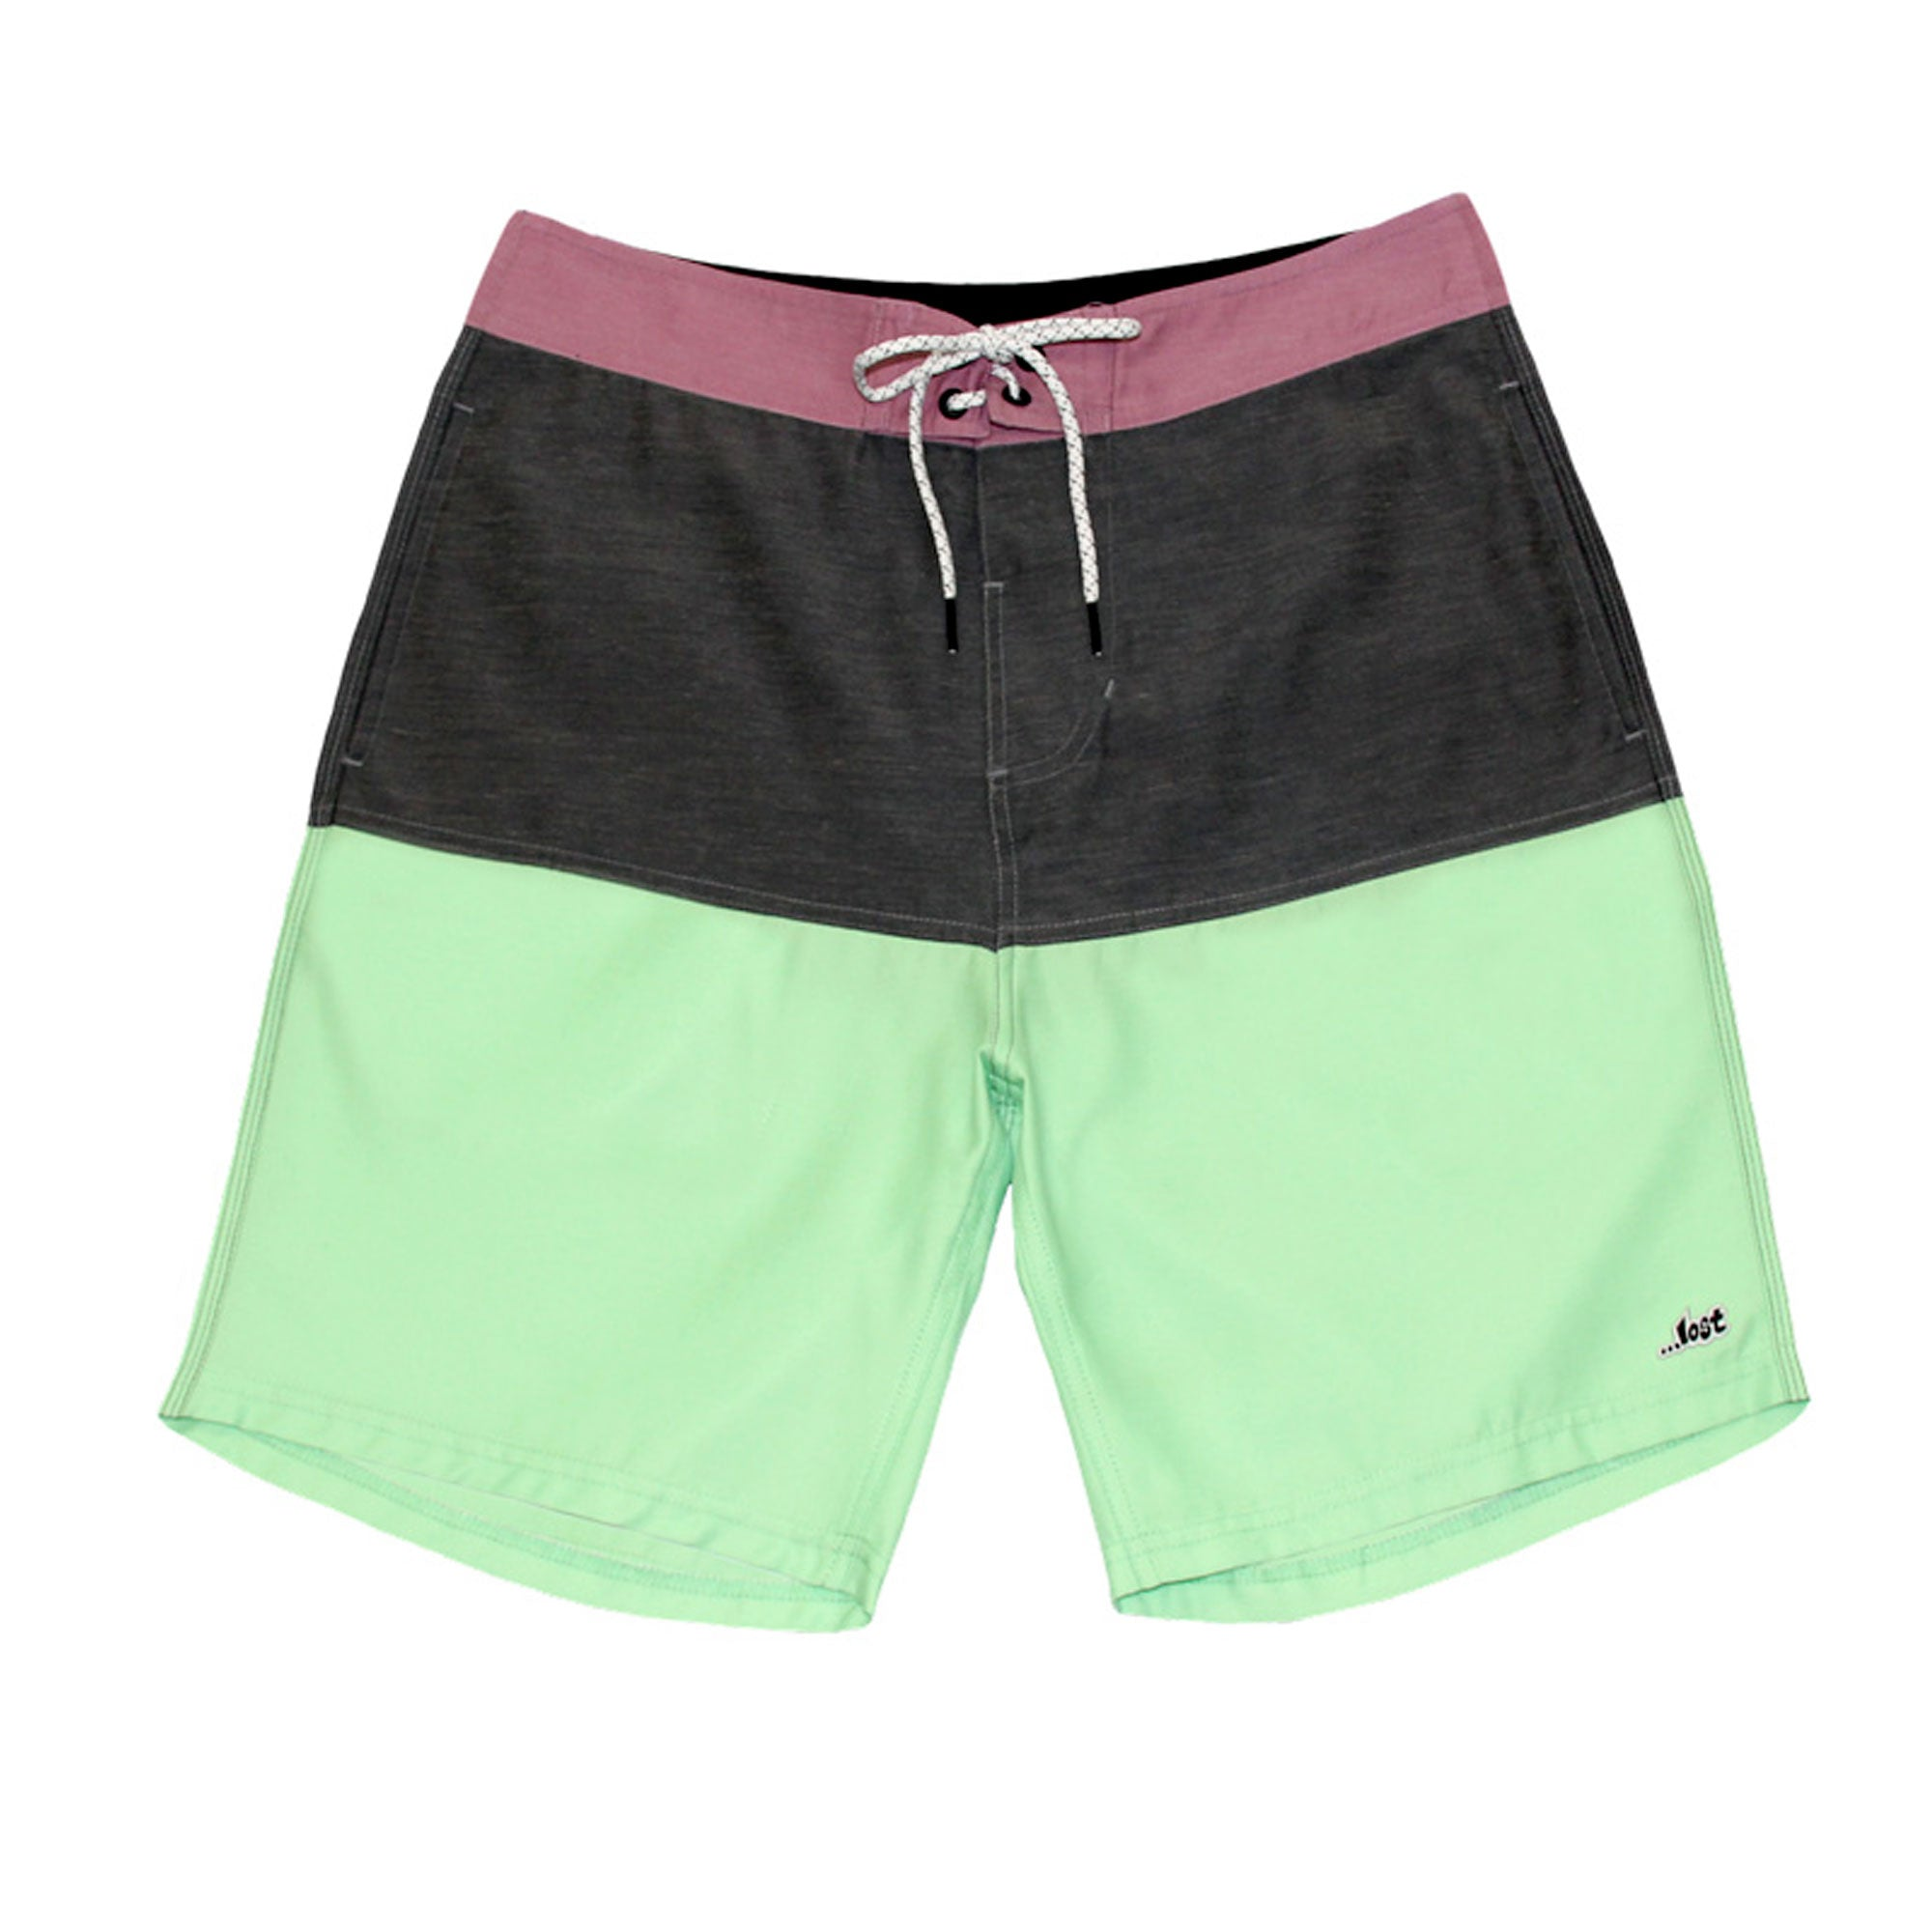 Lost Hazard Pocket 18'' Men's Beachshort